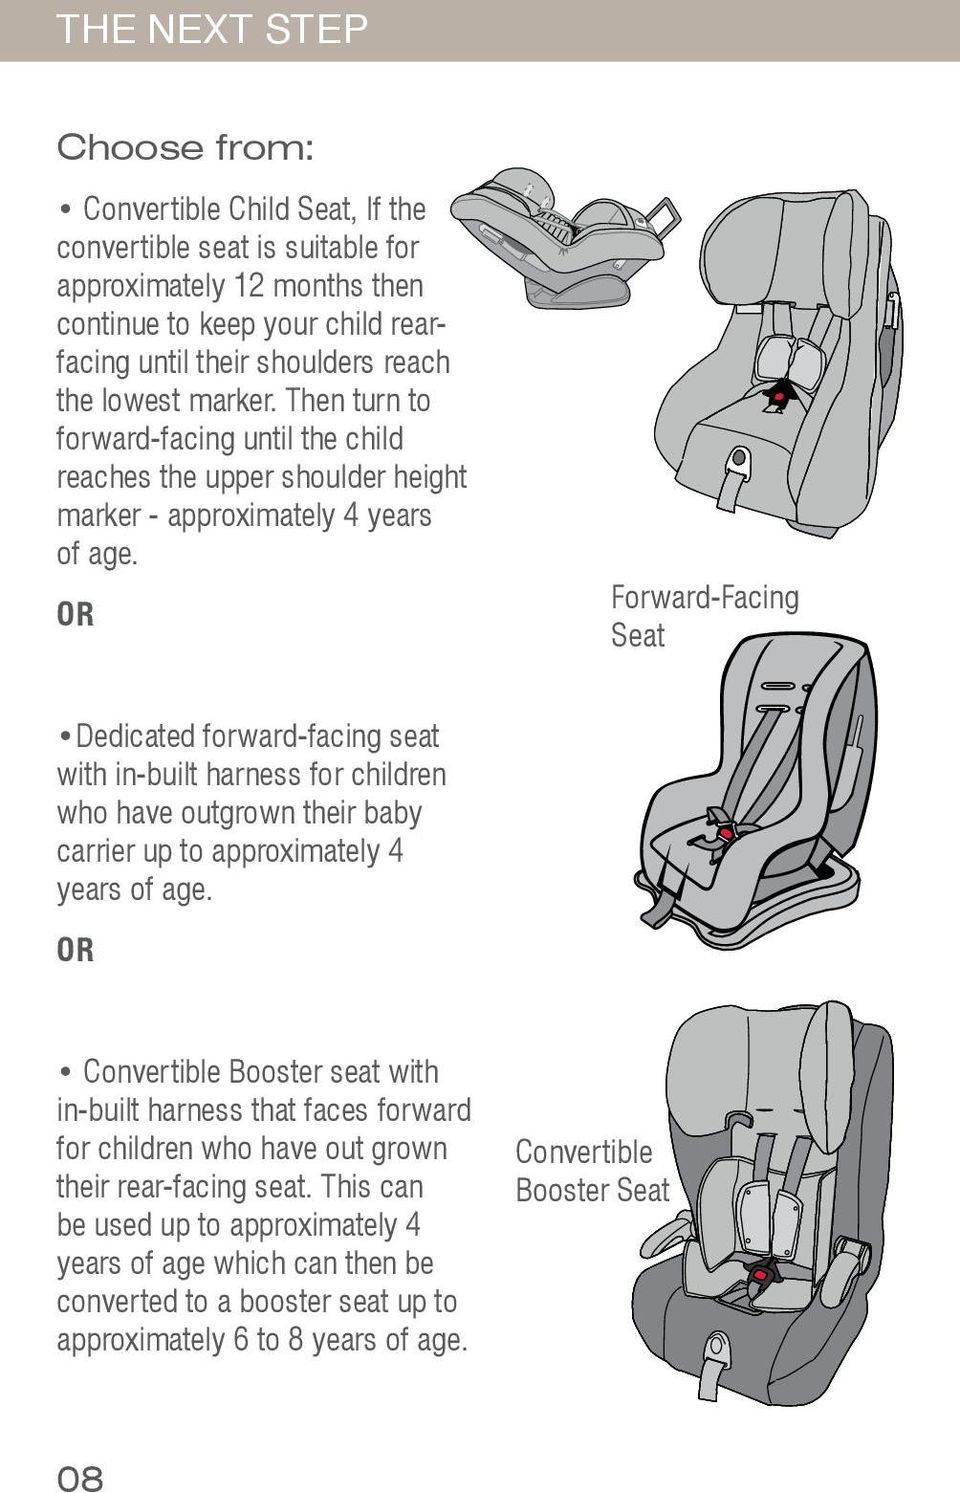 OR Forward-Facing Seat Dedicated forward-facing seat with in-built harness for children who have outgrown their baby carrier up to approximately 4 years of age.